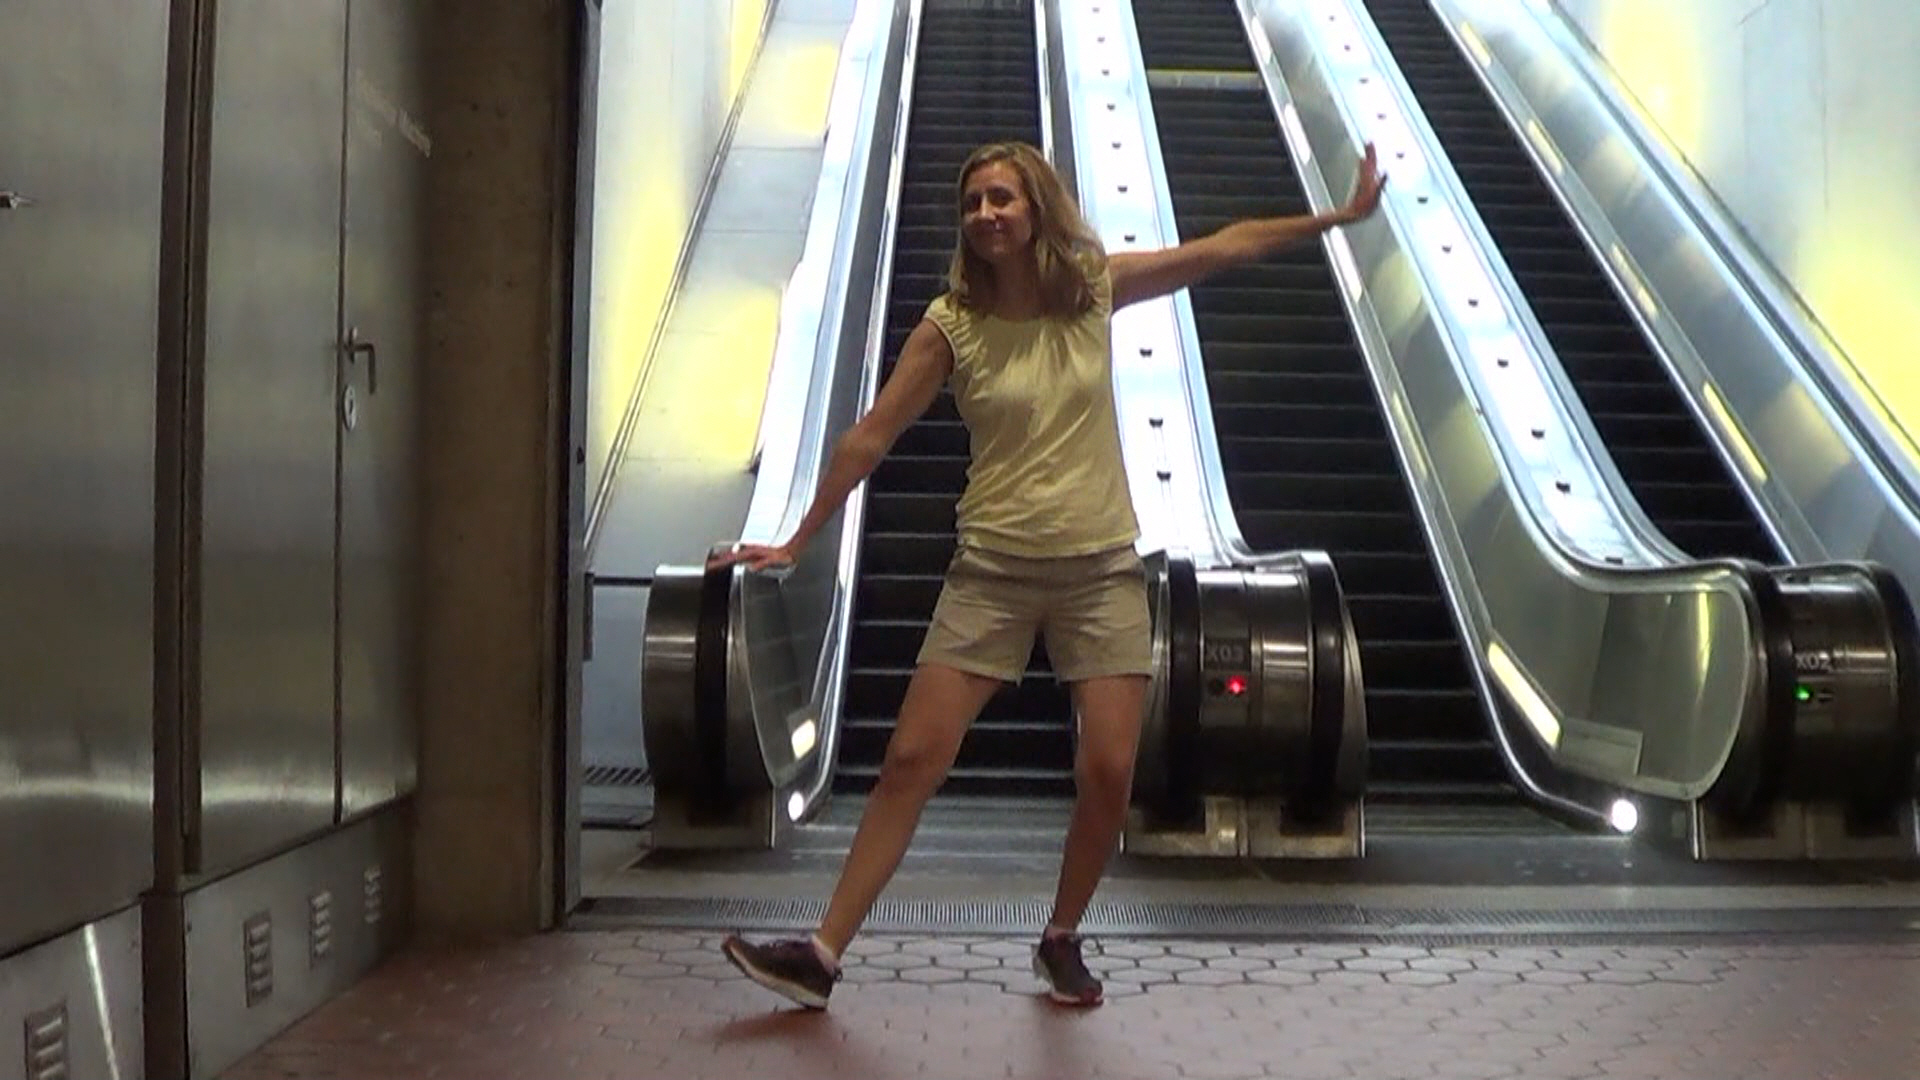 01 - Metro Escalator